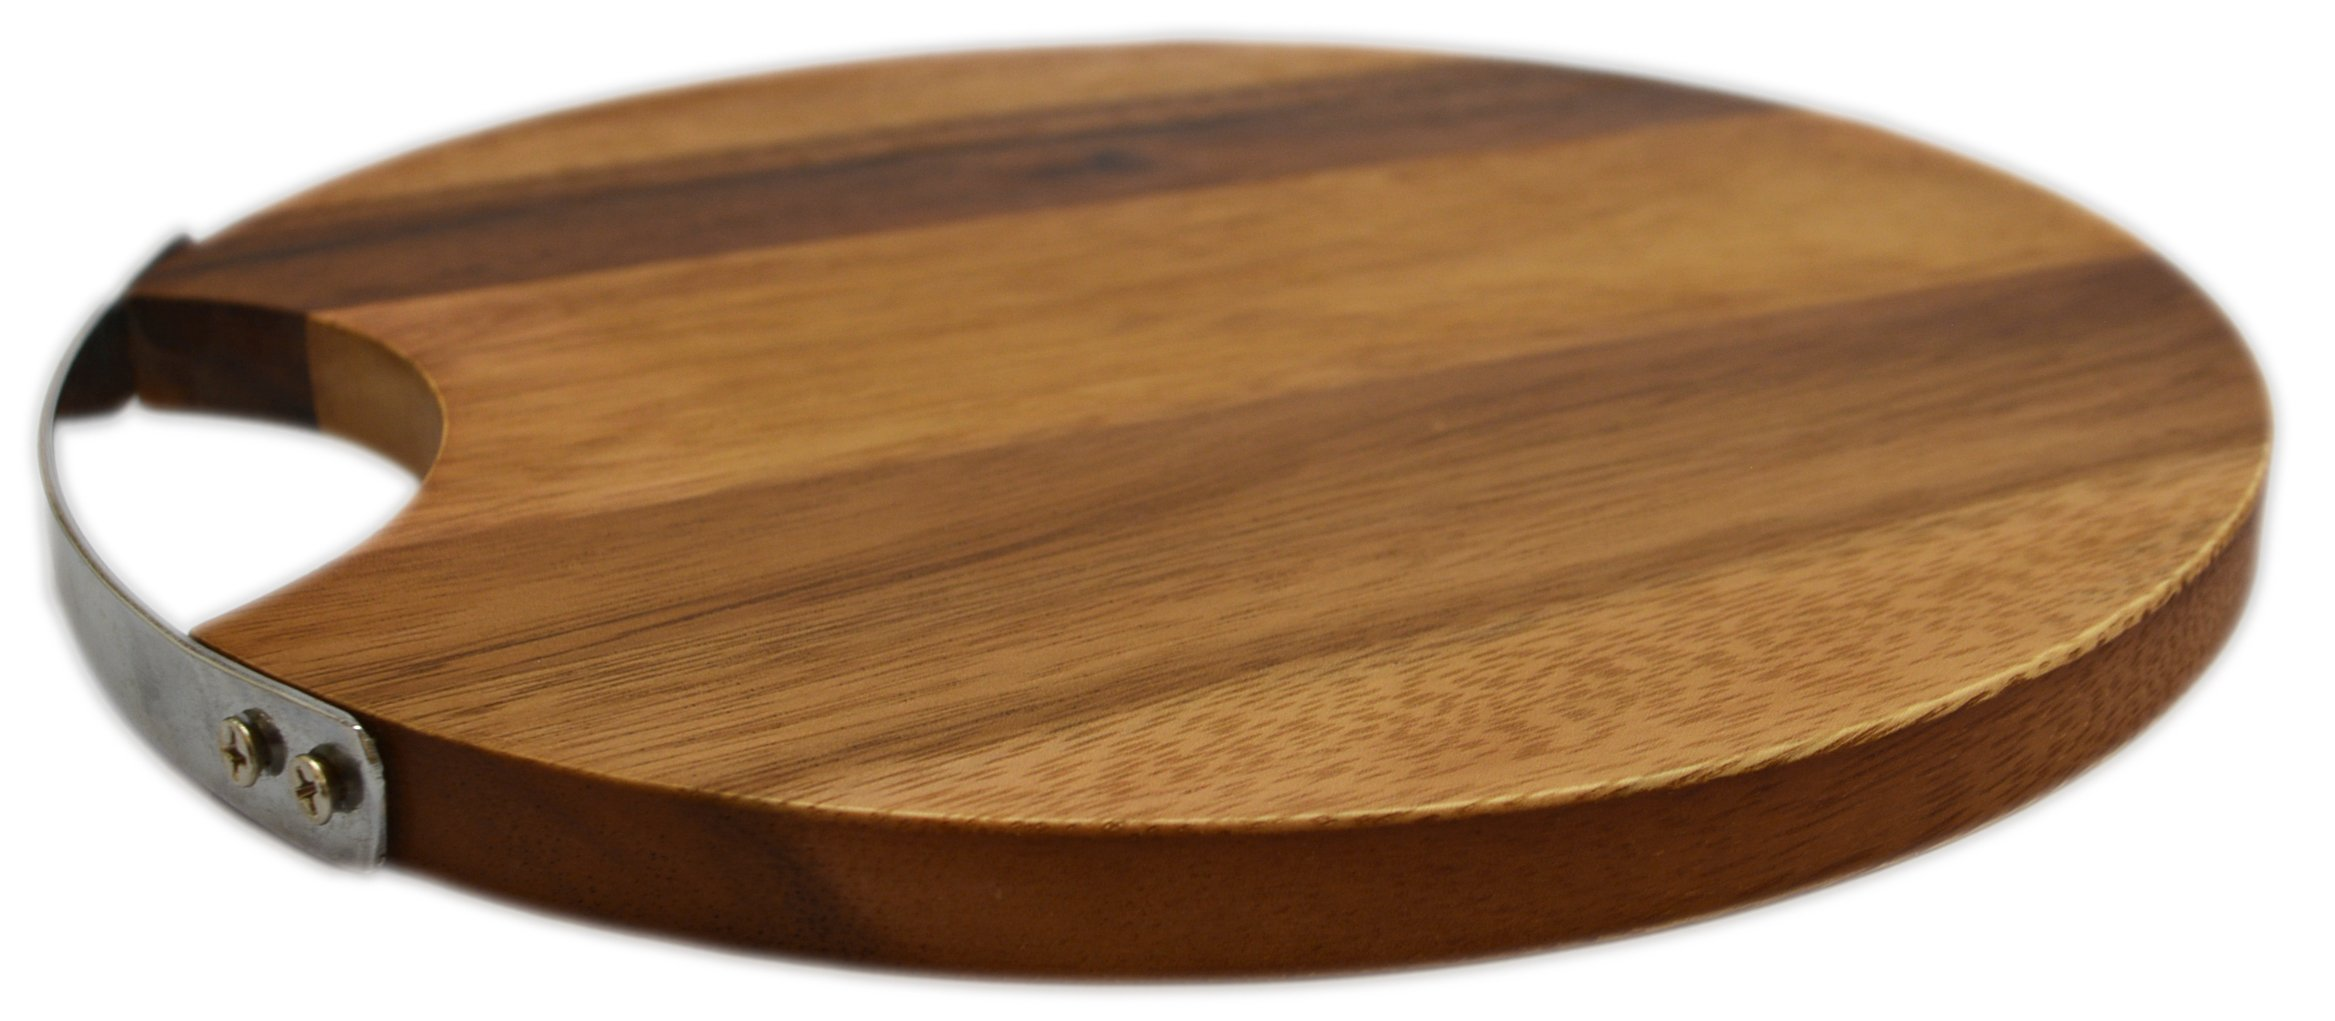 RoRo Round Wood Cheese and Serve Board with Stainless Steel Handle, 10 Inch